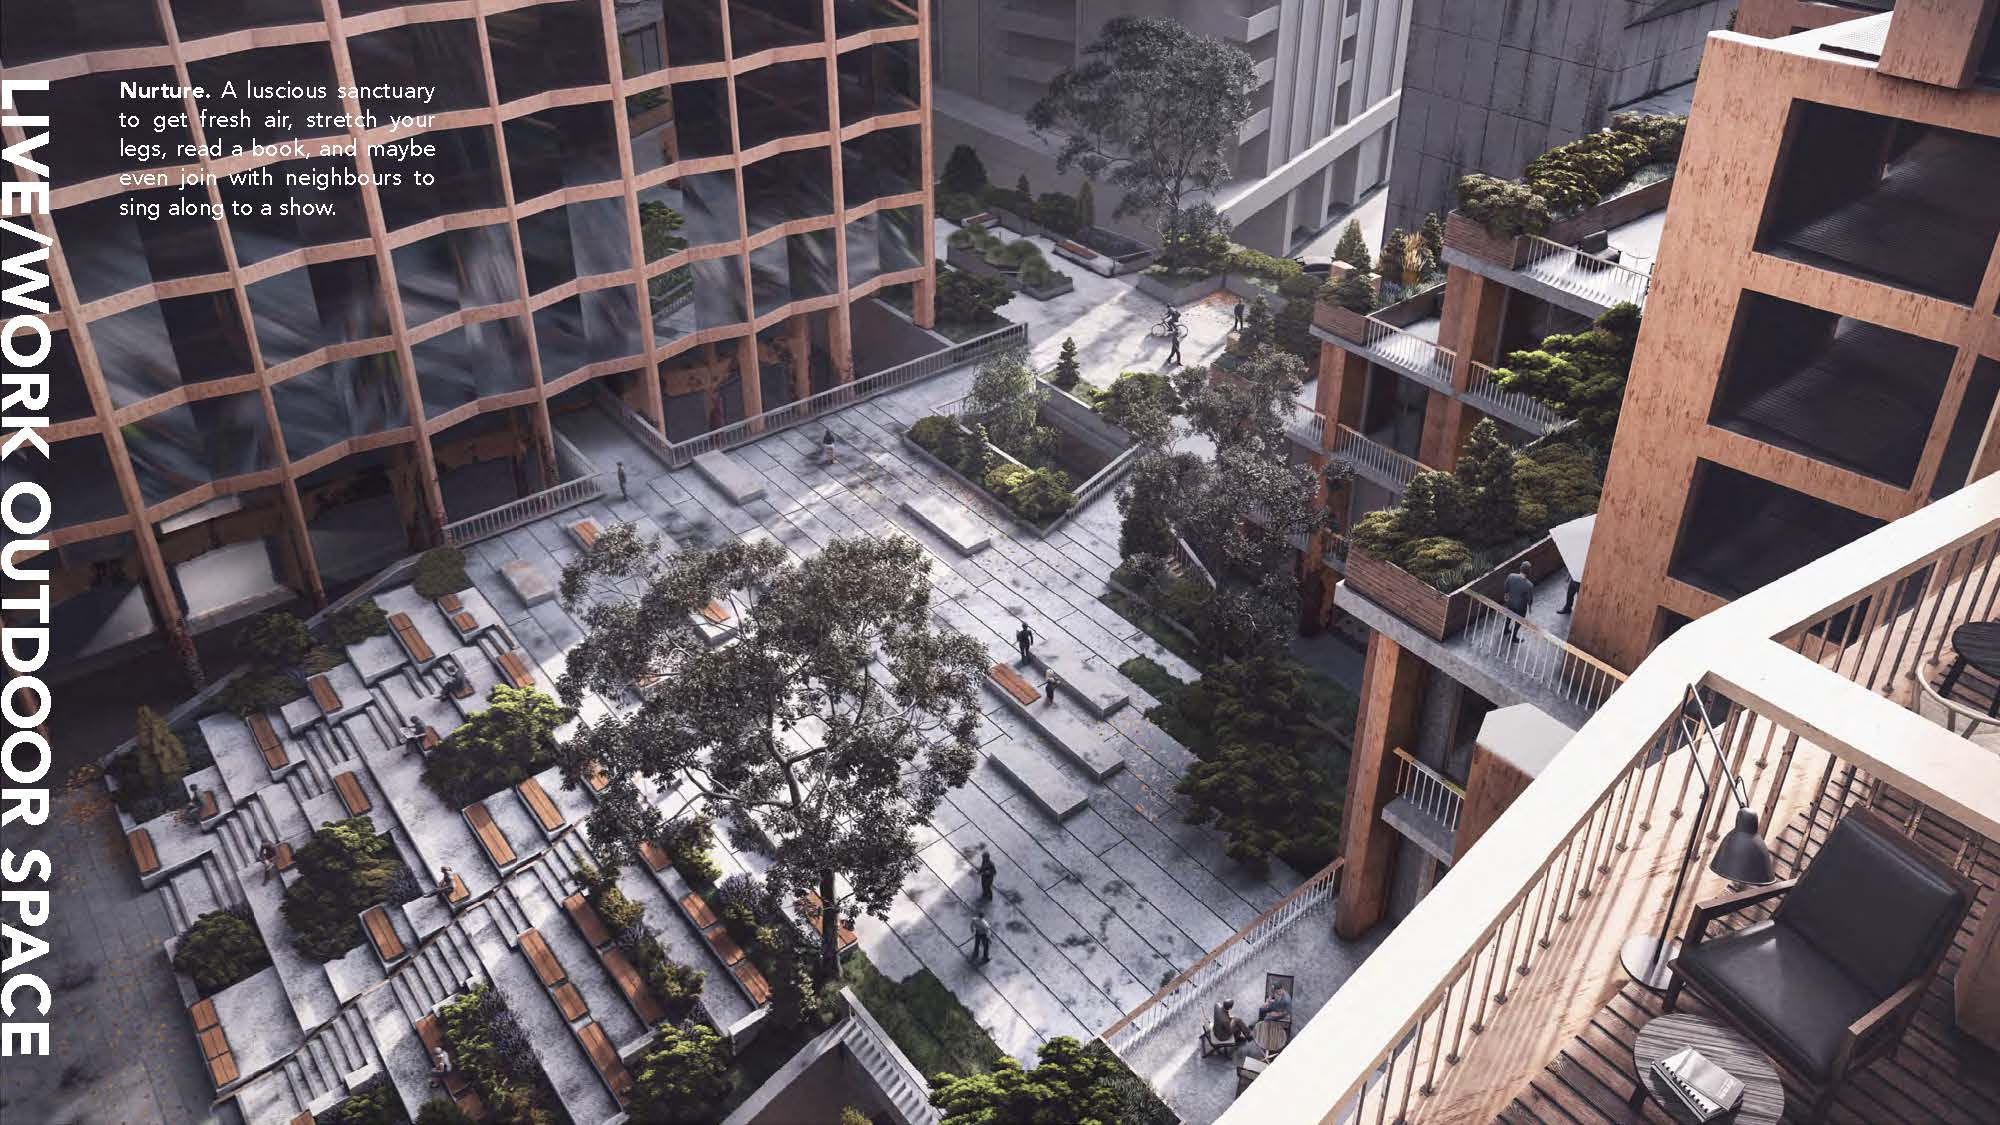 A 3D visualization of live/work outdoor space- a courtyard with steps as benches. seen from a bird's eye view.